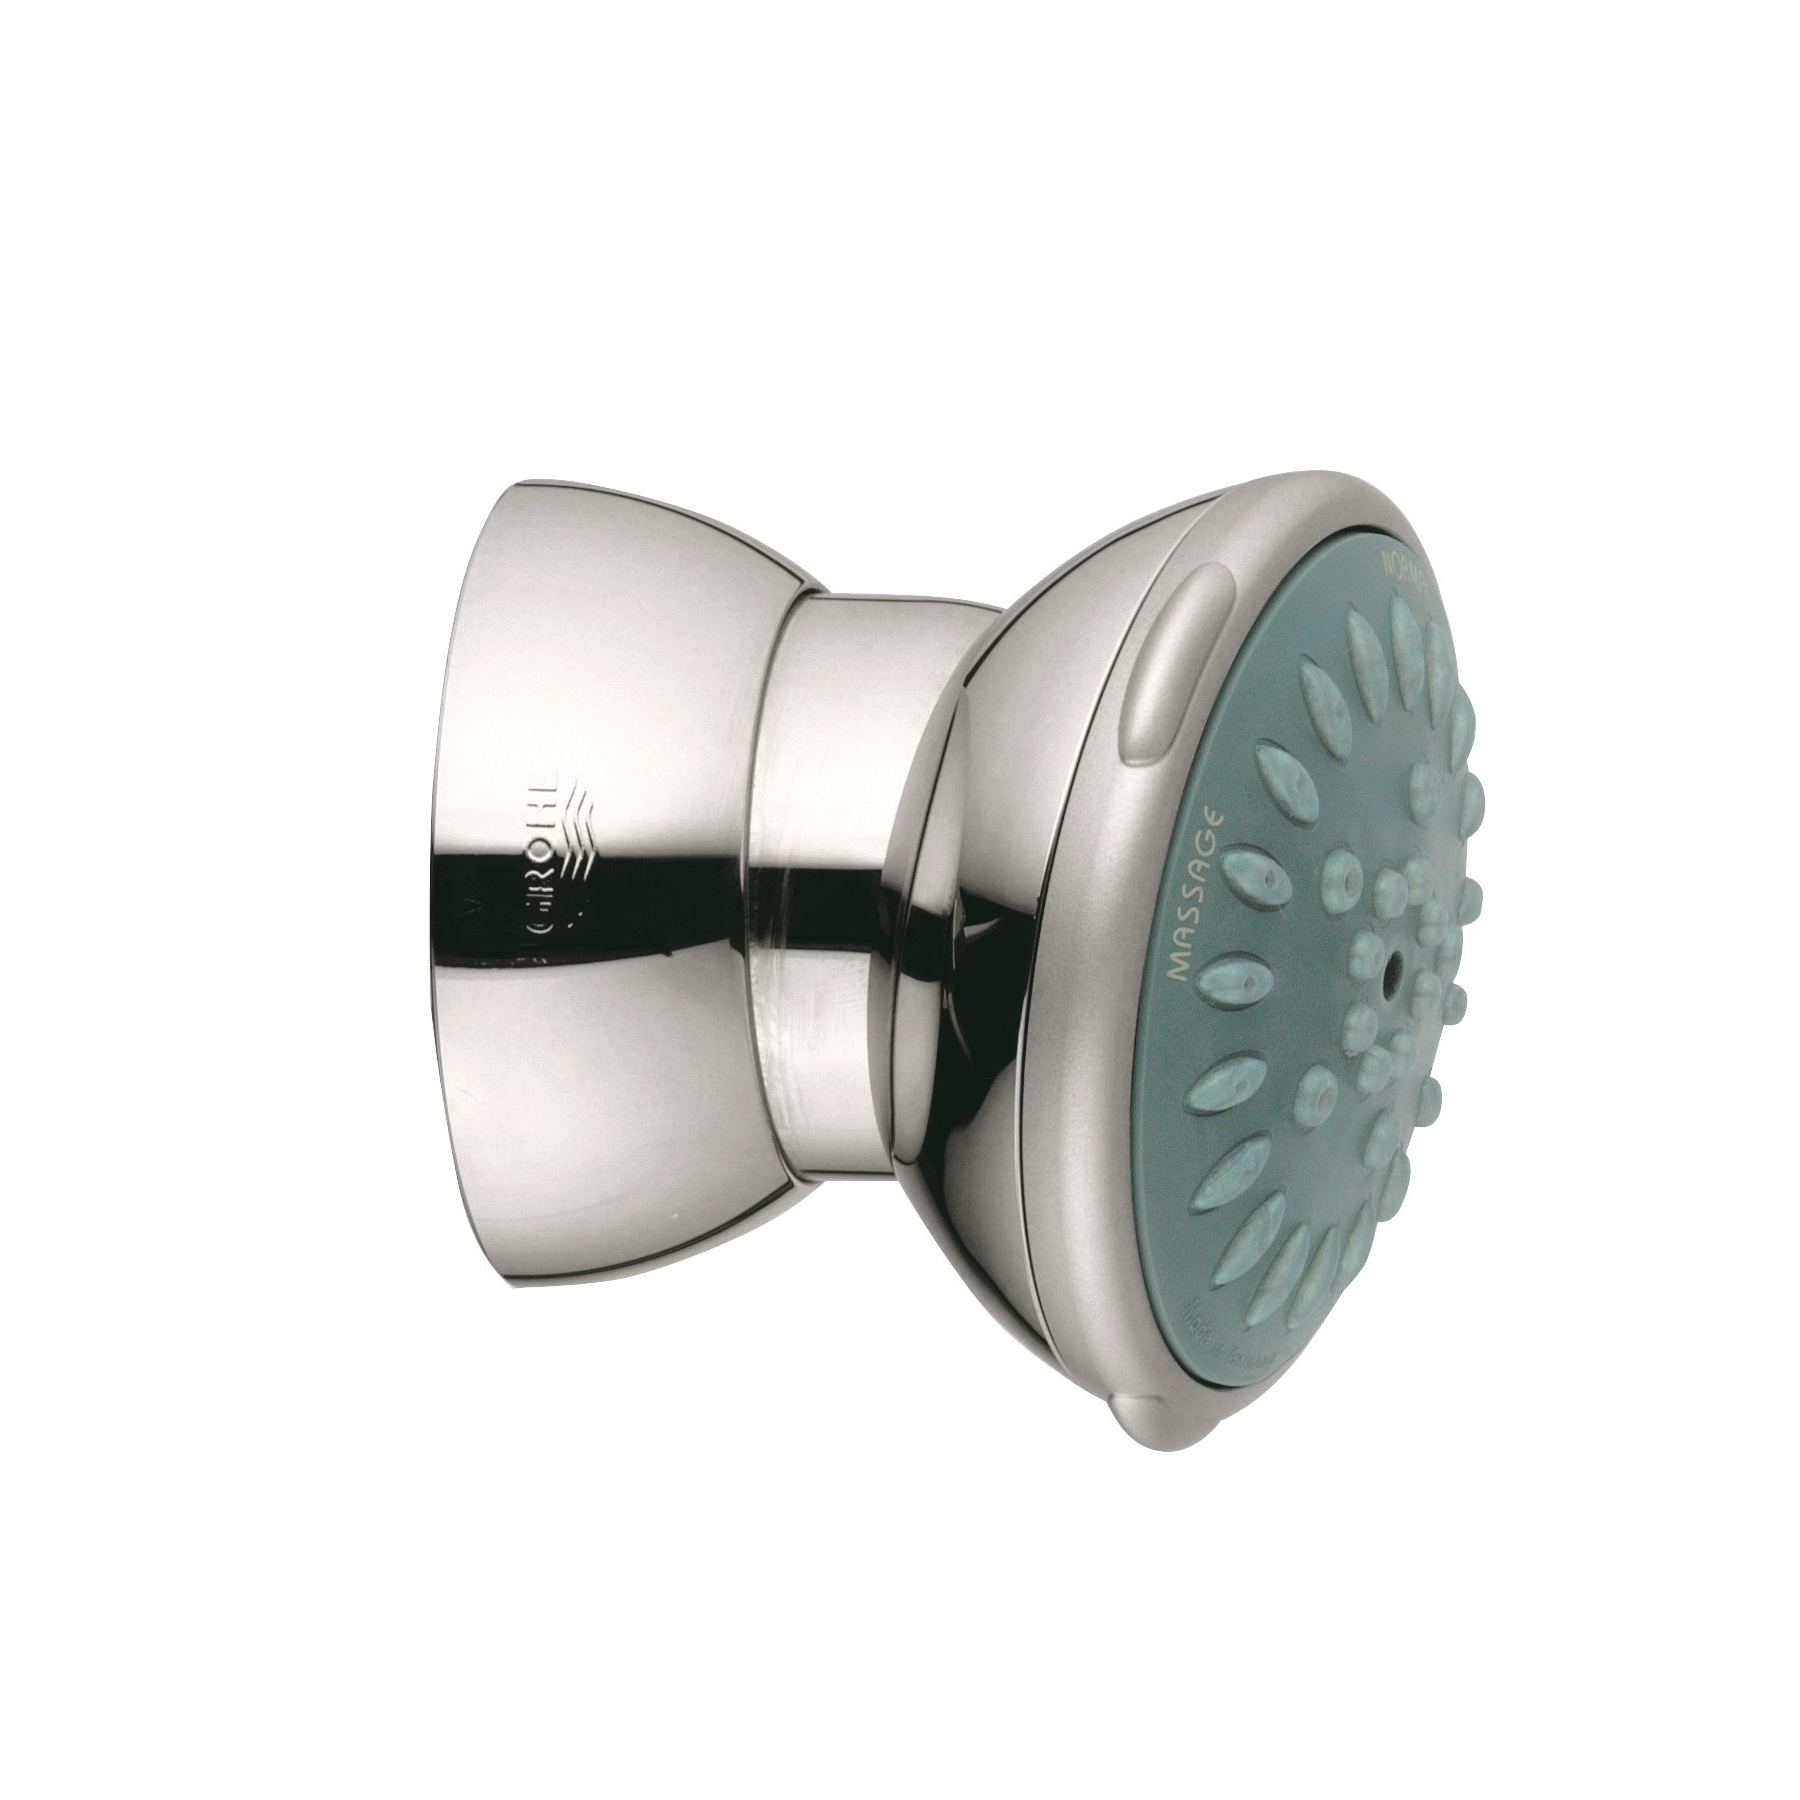 GROHE 28528BE0 Movario 70 Side Shower, (2) Normal/Massage Spray, 2.5 gpm Maximum, Import